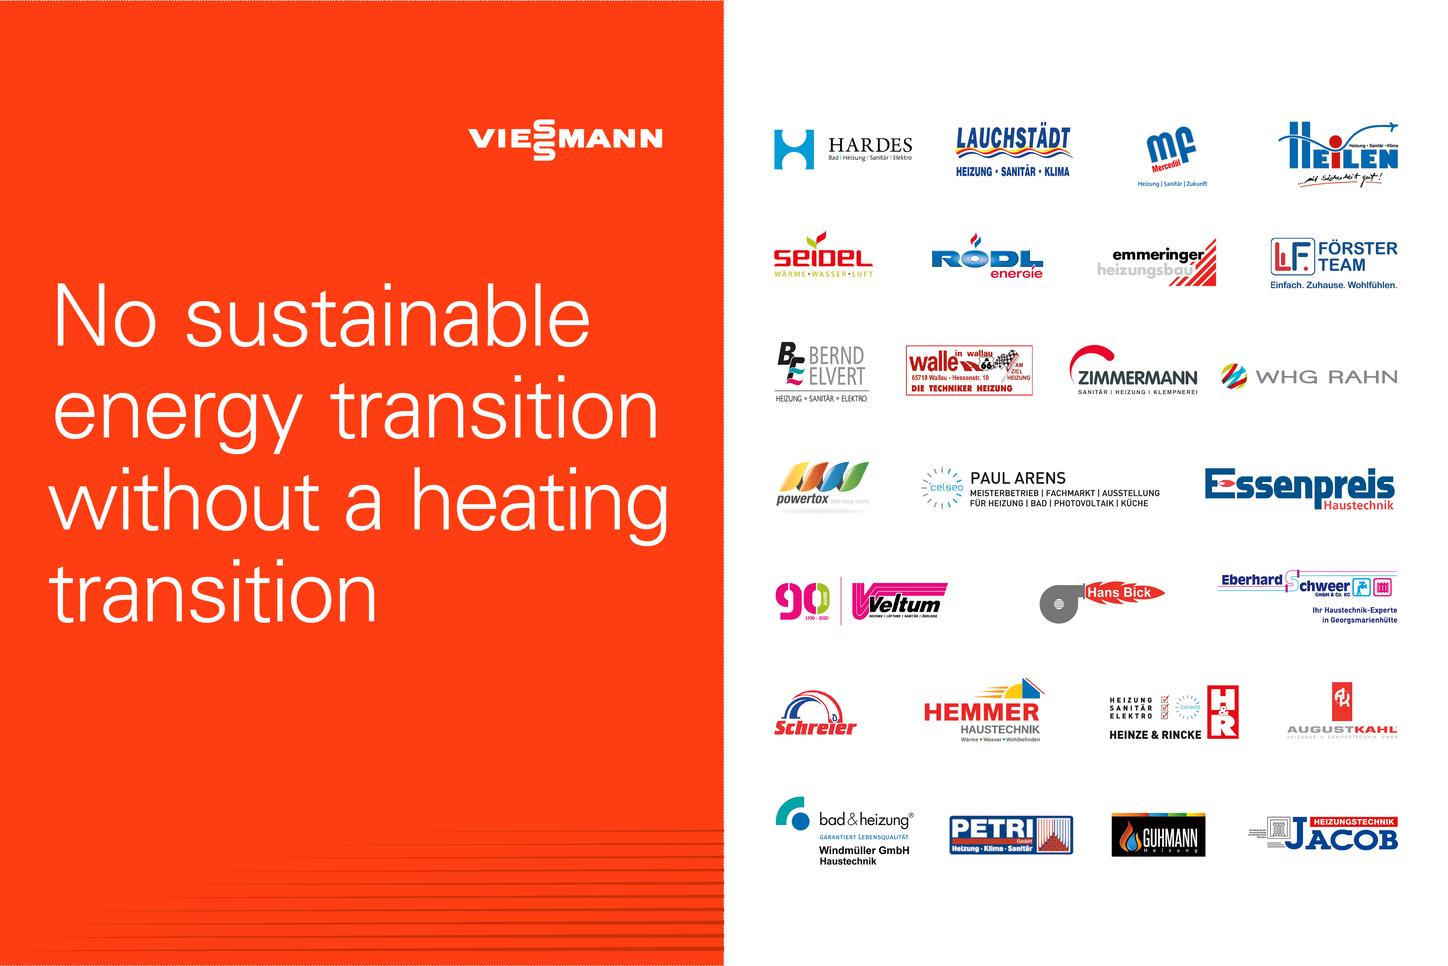 """The image shows the slogan """"No energy turnaround without a heat transition"""" and the logos of the installers involved."""